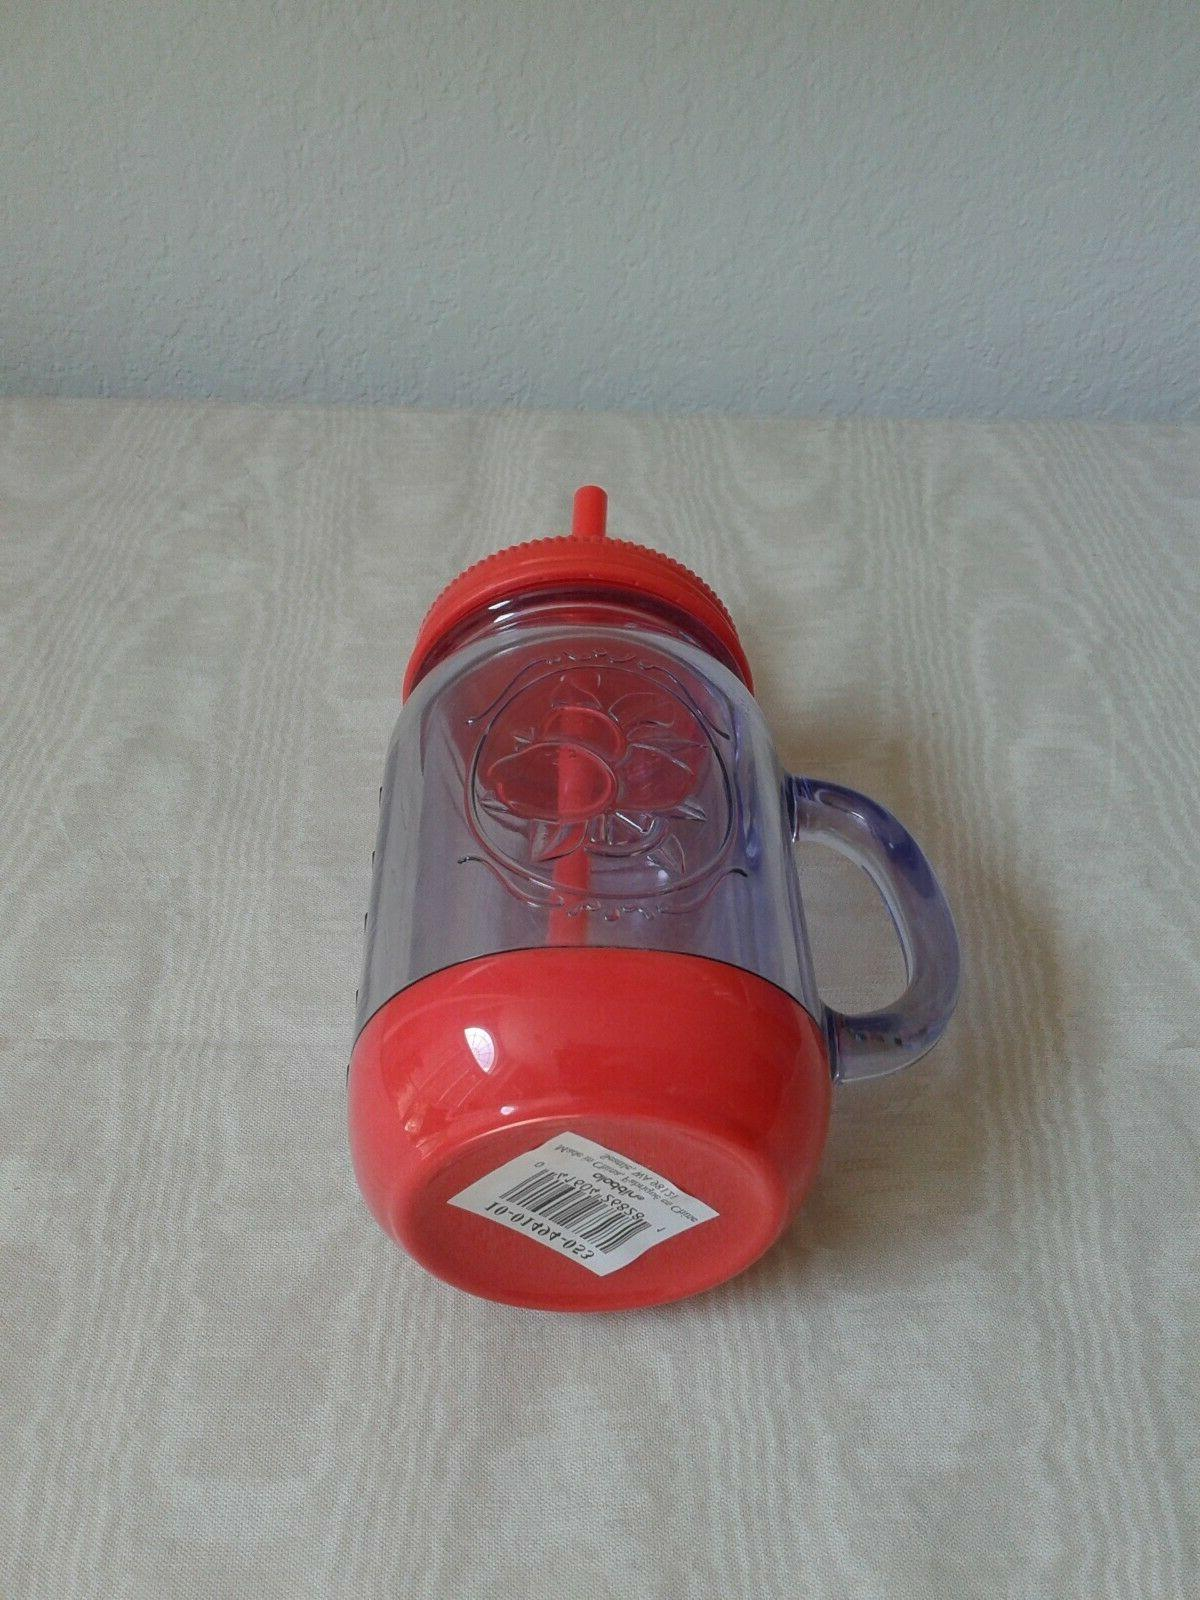 Aladdin Tumbler Mug Insulated Handle, Lid